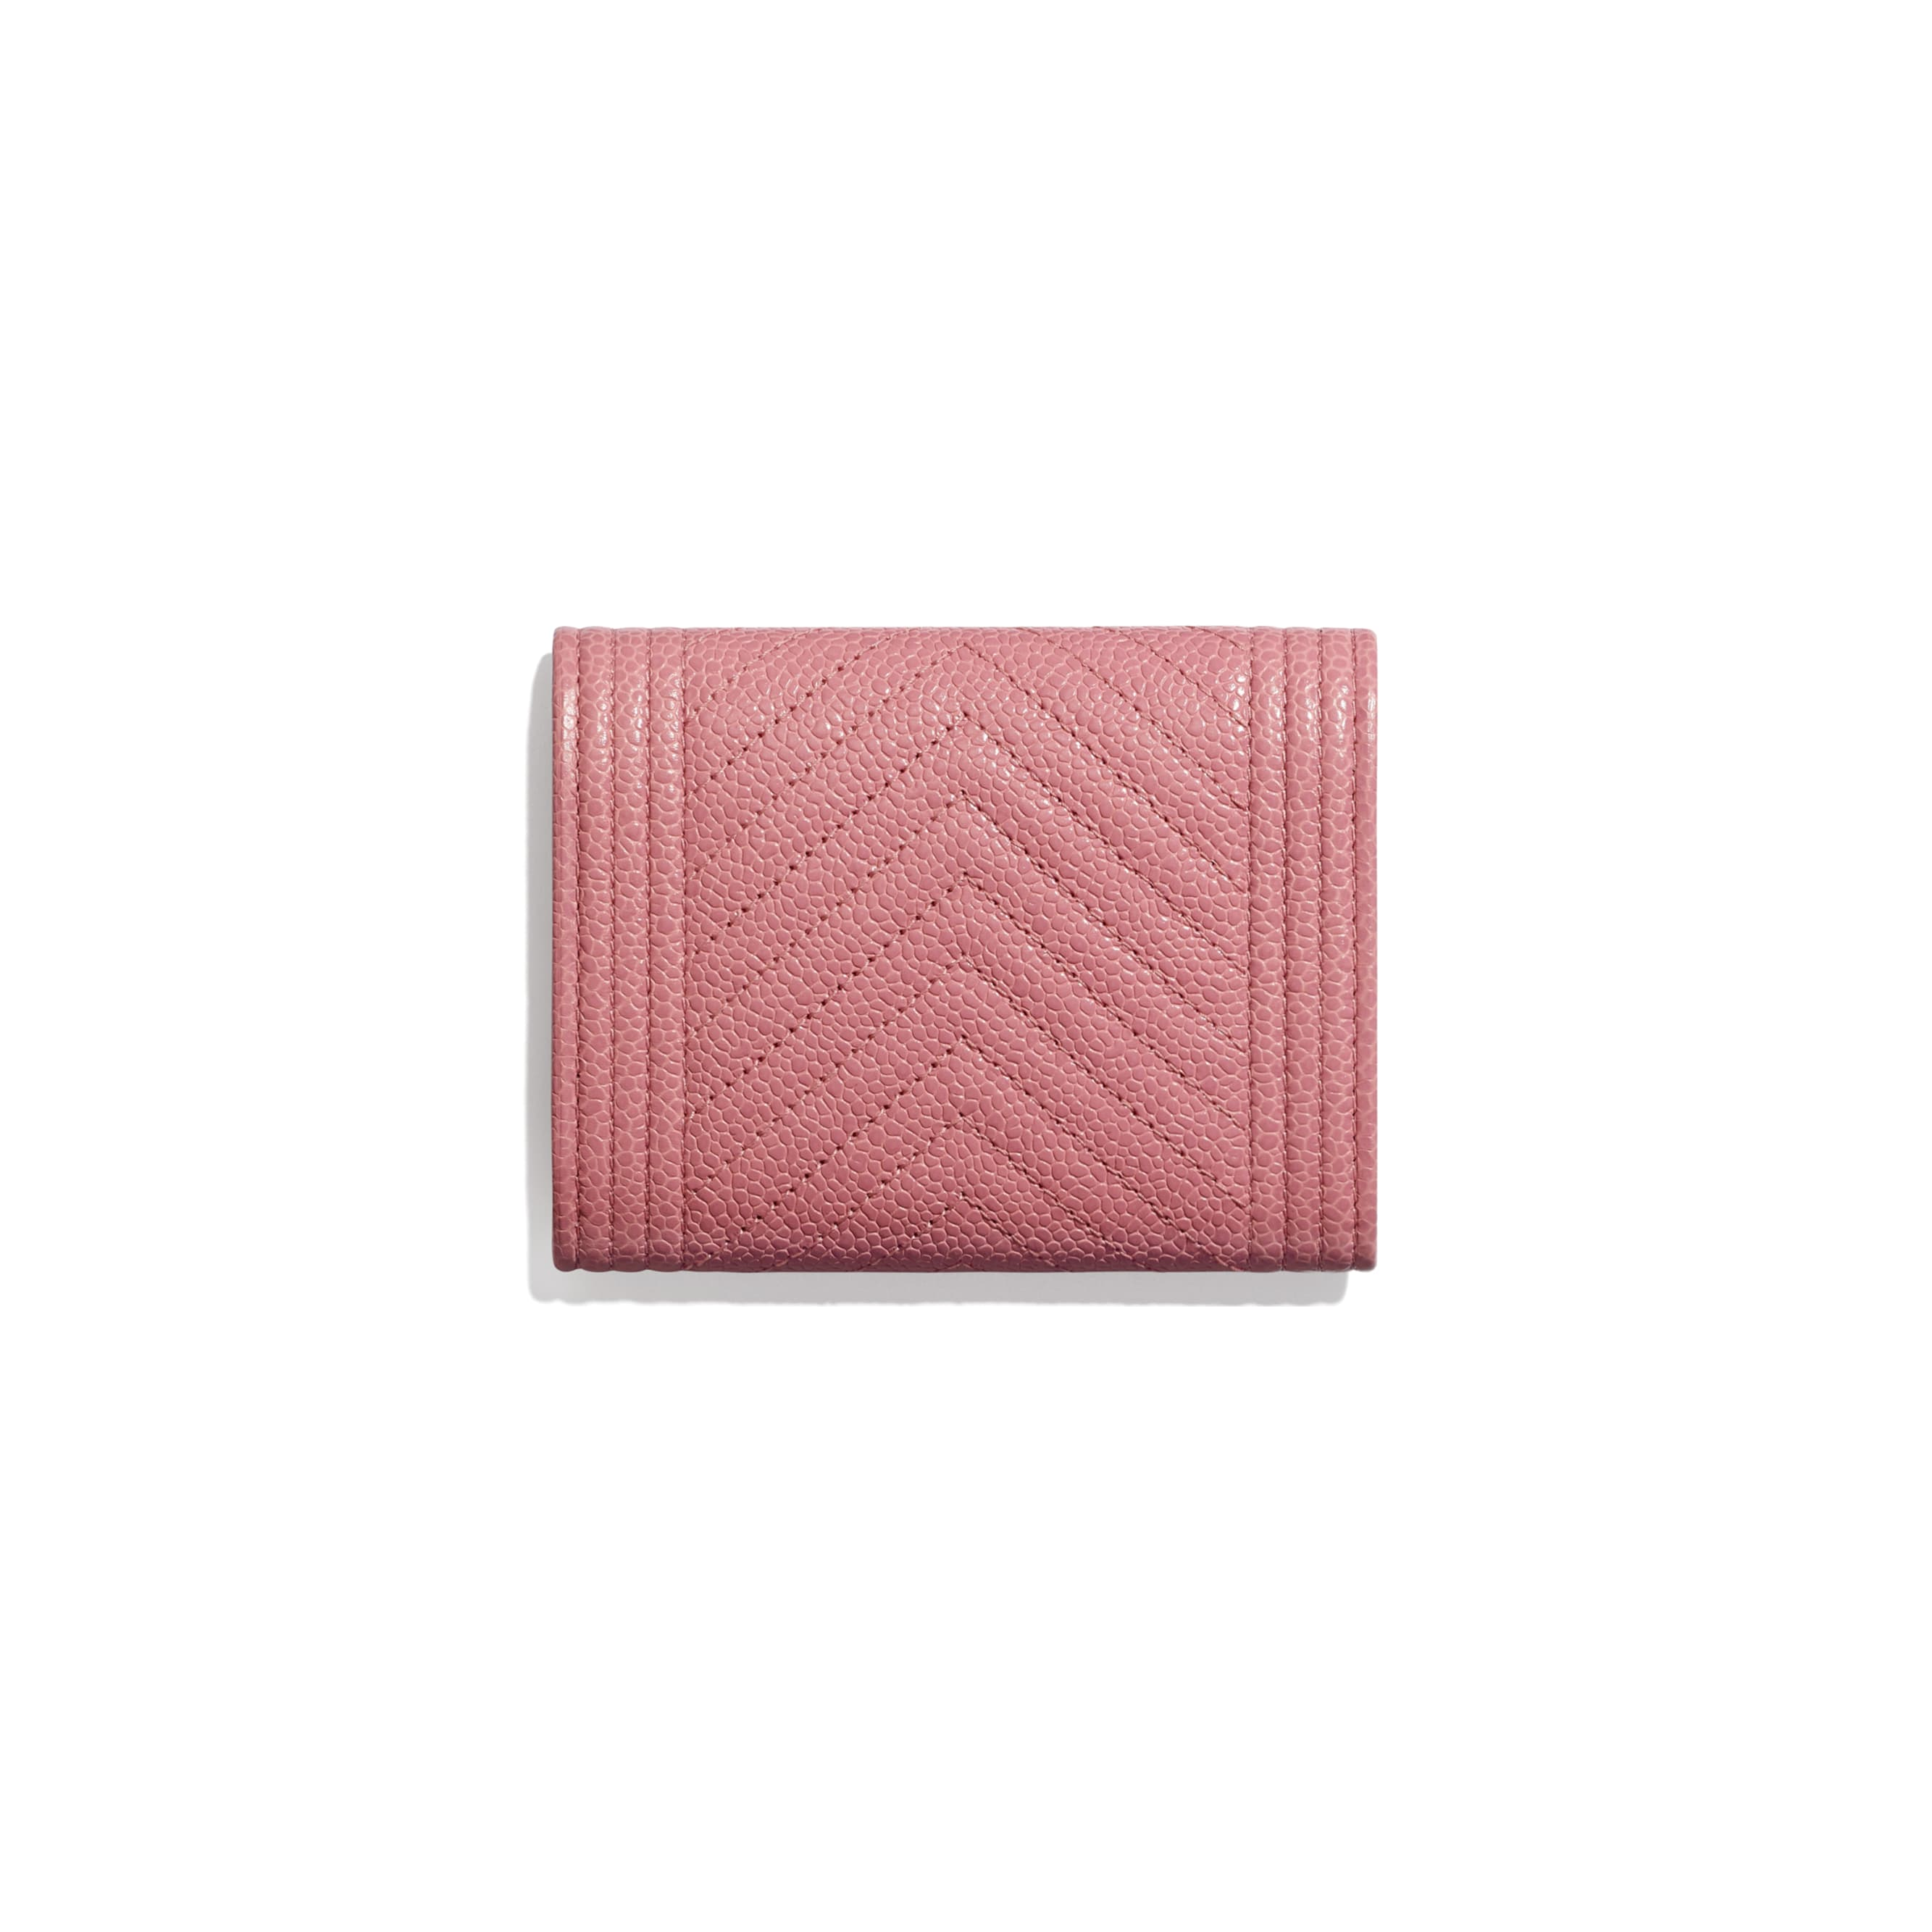 BOY CHANEL Flap Coin Purse - Pink - Shiny Grained Calfskin & Silver-Tone Metal - Alternative view - see standard sized version